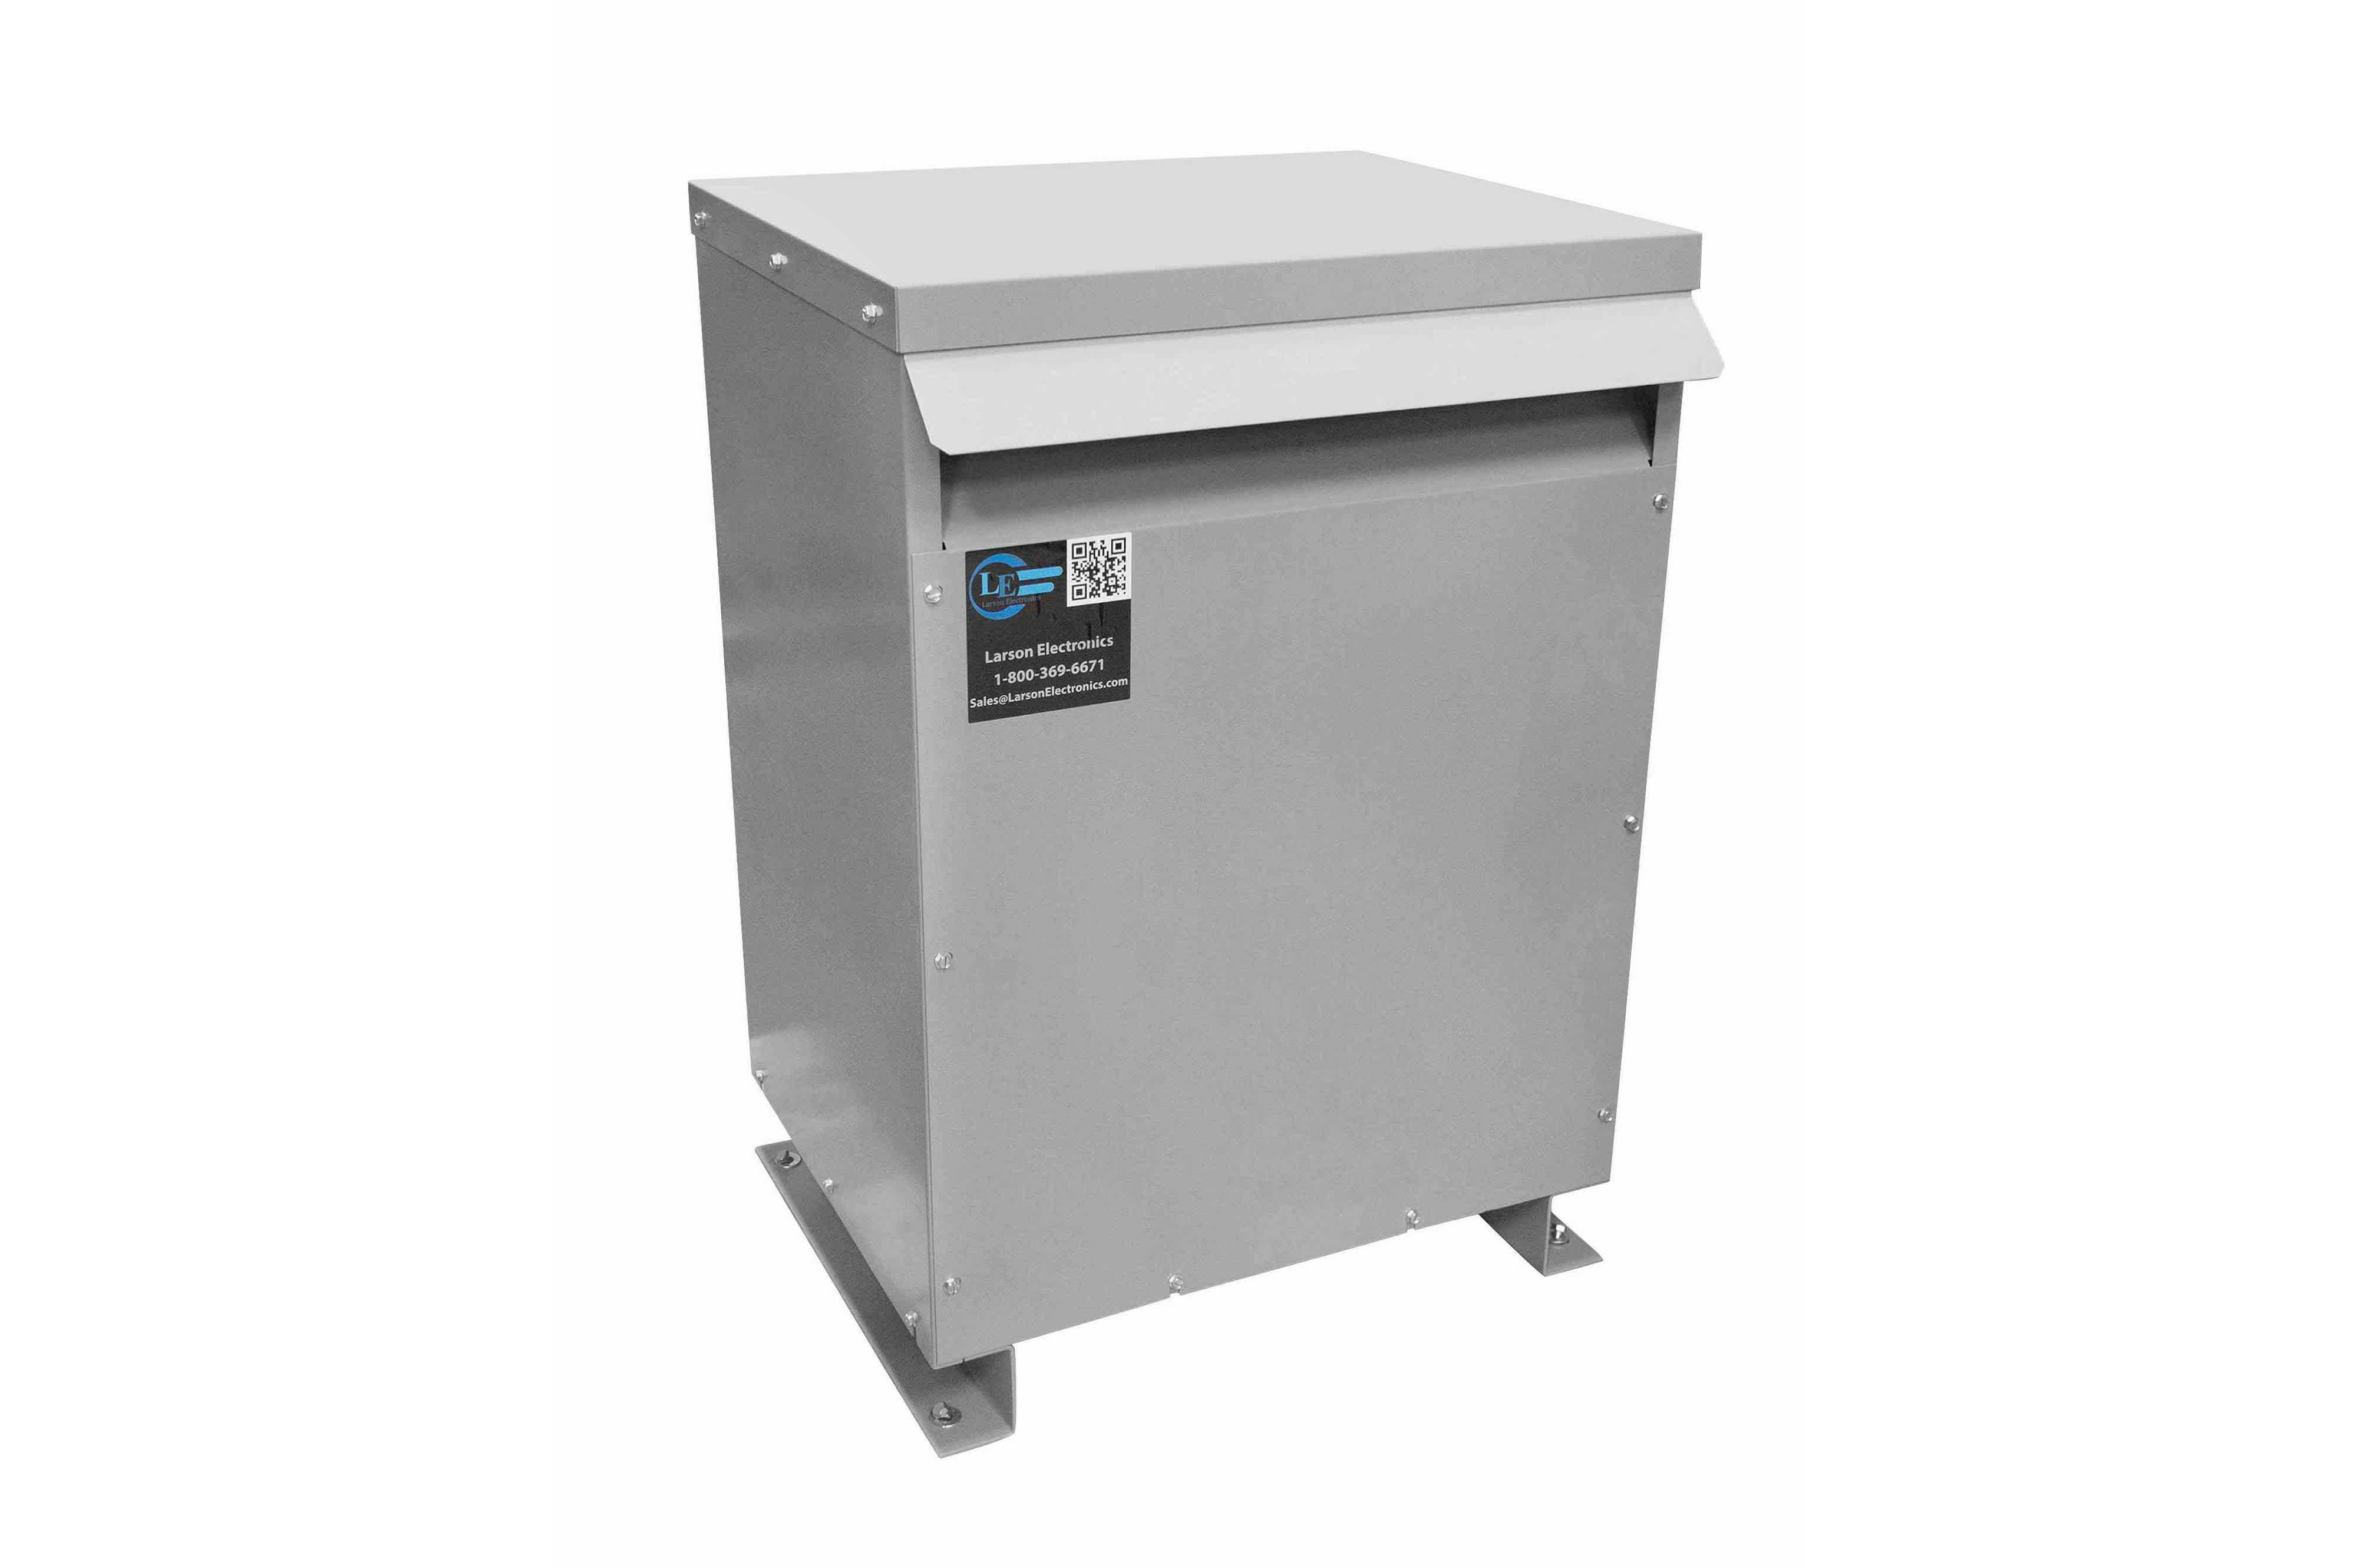 15 kVA 3PH Isolation Transformer, 230V Wye Primary, 208Y/120 Wye-N Secondary, N3R, Ventilated, 60 Hz